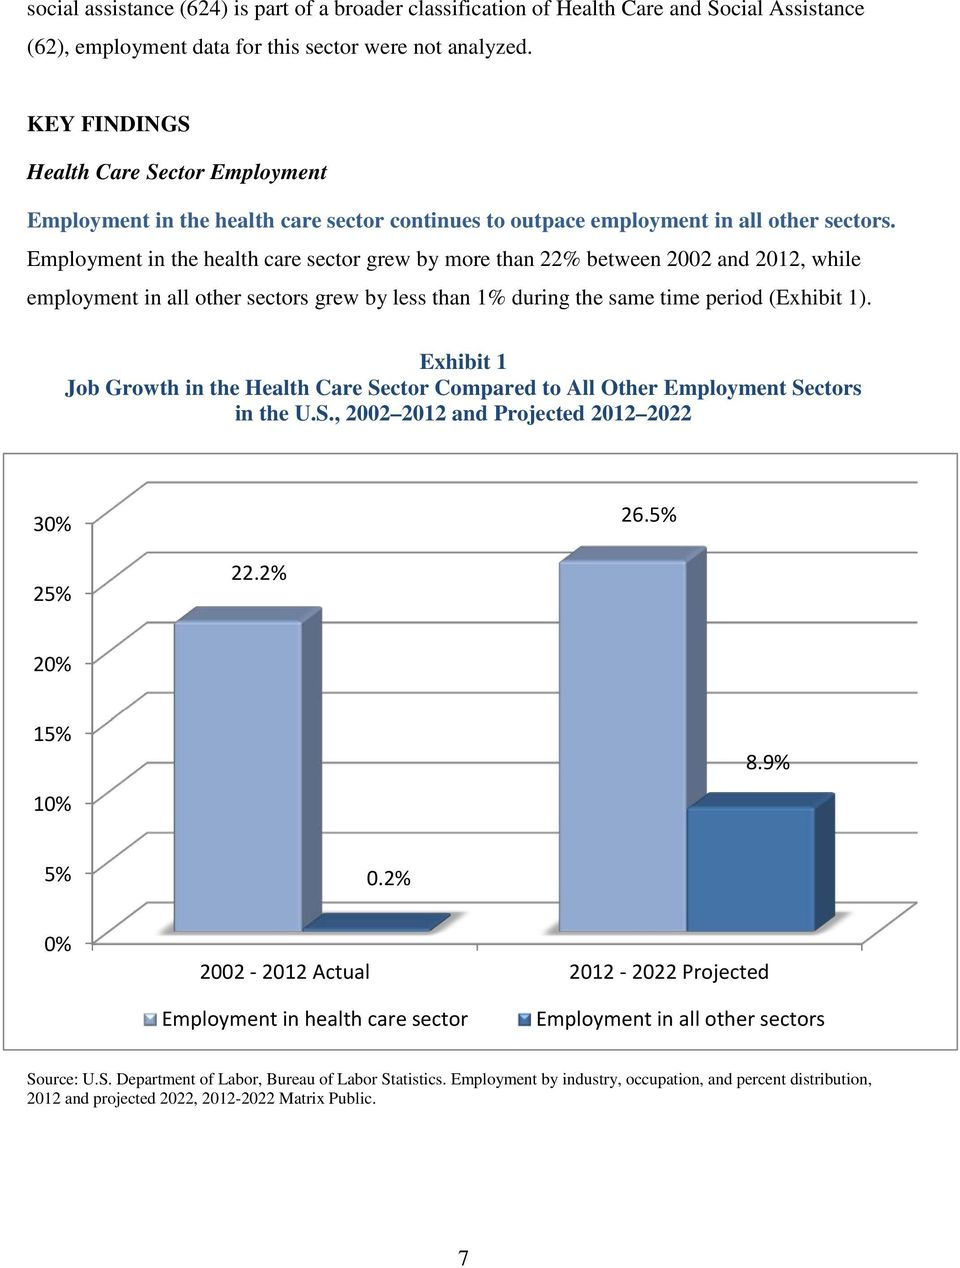 Employment in the health care sector grew by more than 22% between 2002 and 2012, while employment in all other sectors grew by less than 1% during the same time period (Exhibit 1).